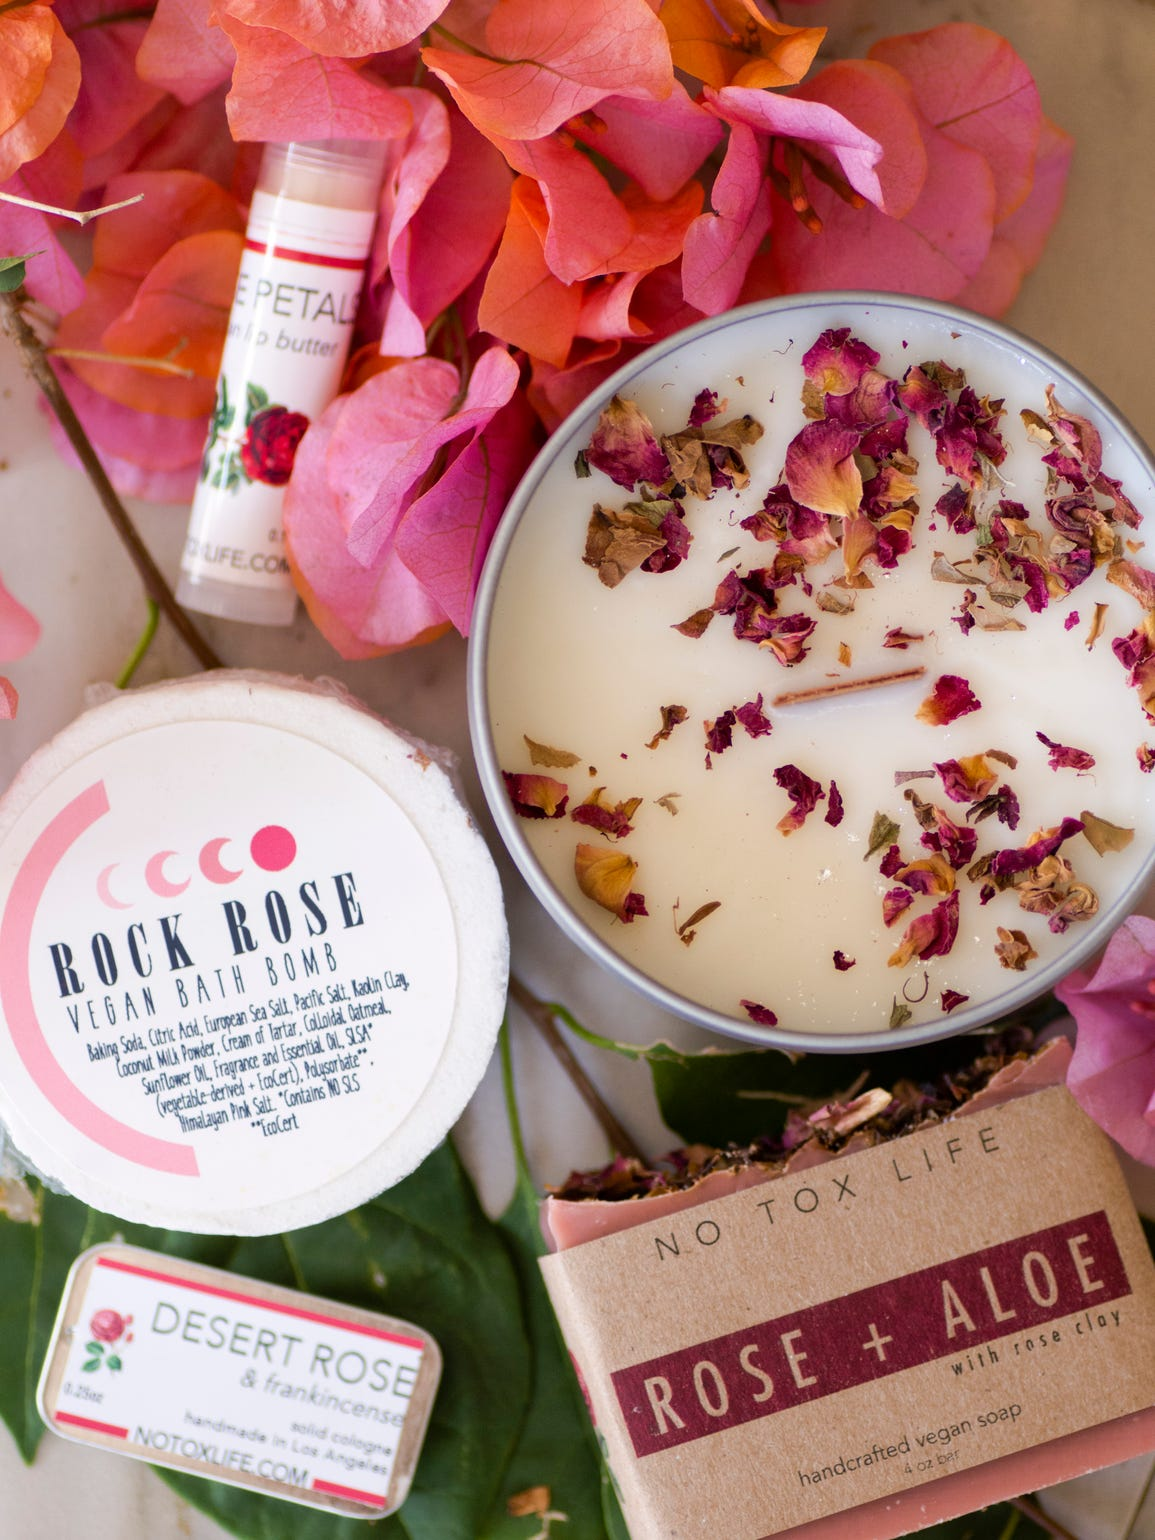 No Tox Life all-natural beauty products